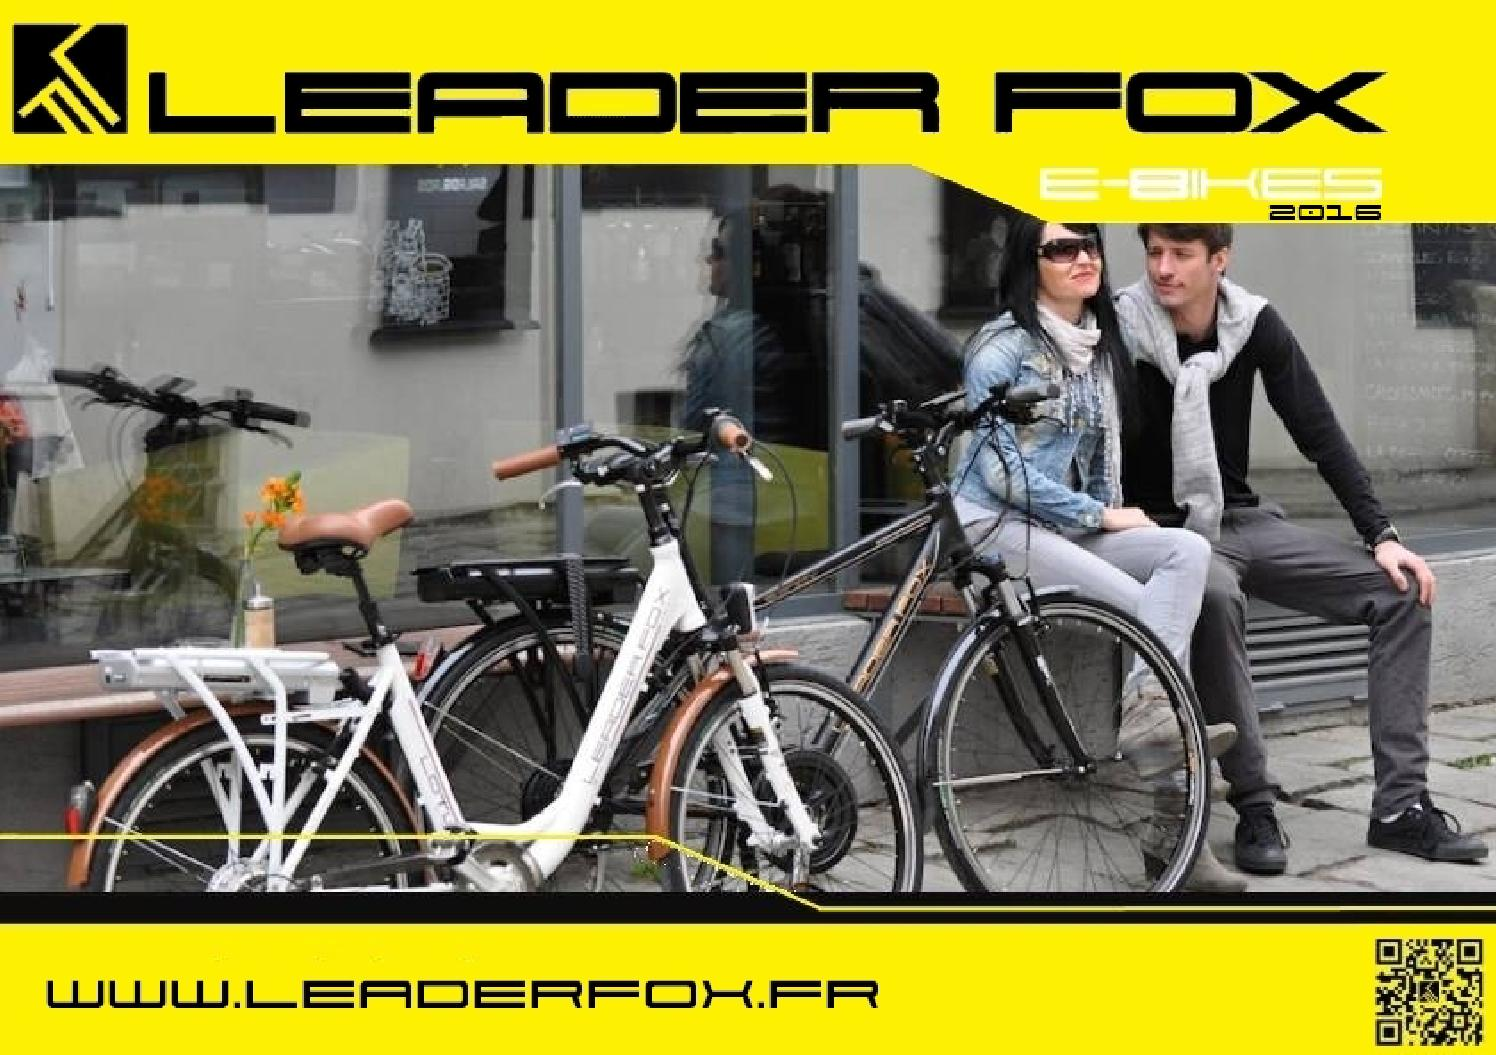 Catalogue e bikes vae leaderfox 2016 by veloeco issuu - Catalogue 3 suisses 2016 ...